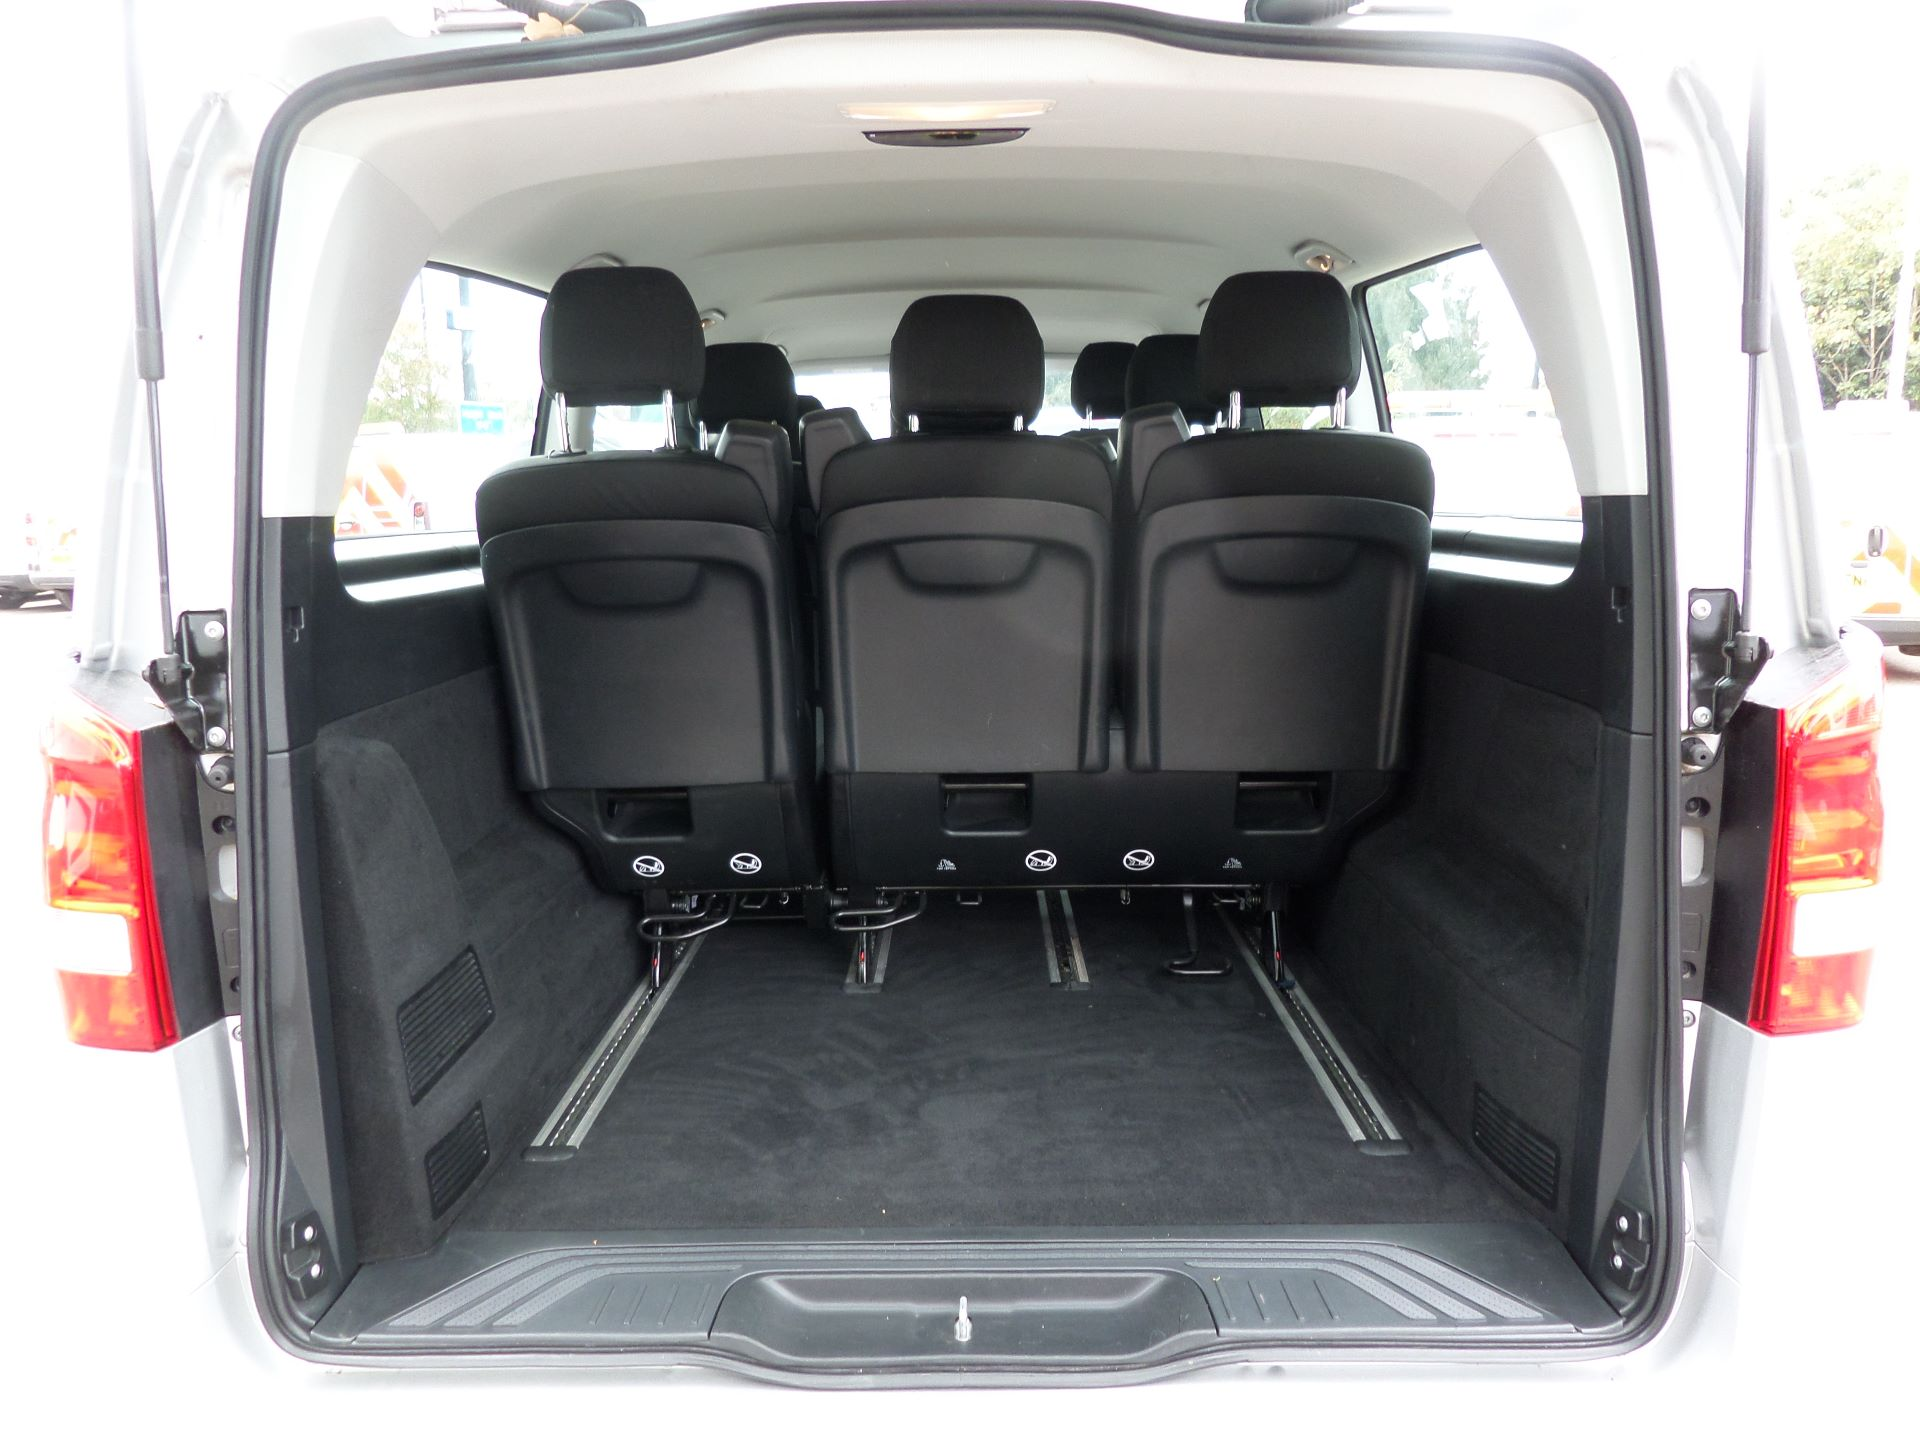 2019 Mercedes-Benz Vito 119 Cdi Select 9-Seater 7G-Tronic Euro 6 (KR19UYC) Image 6